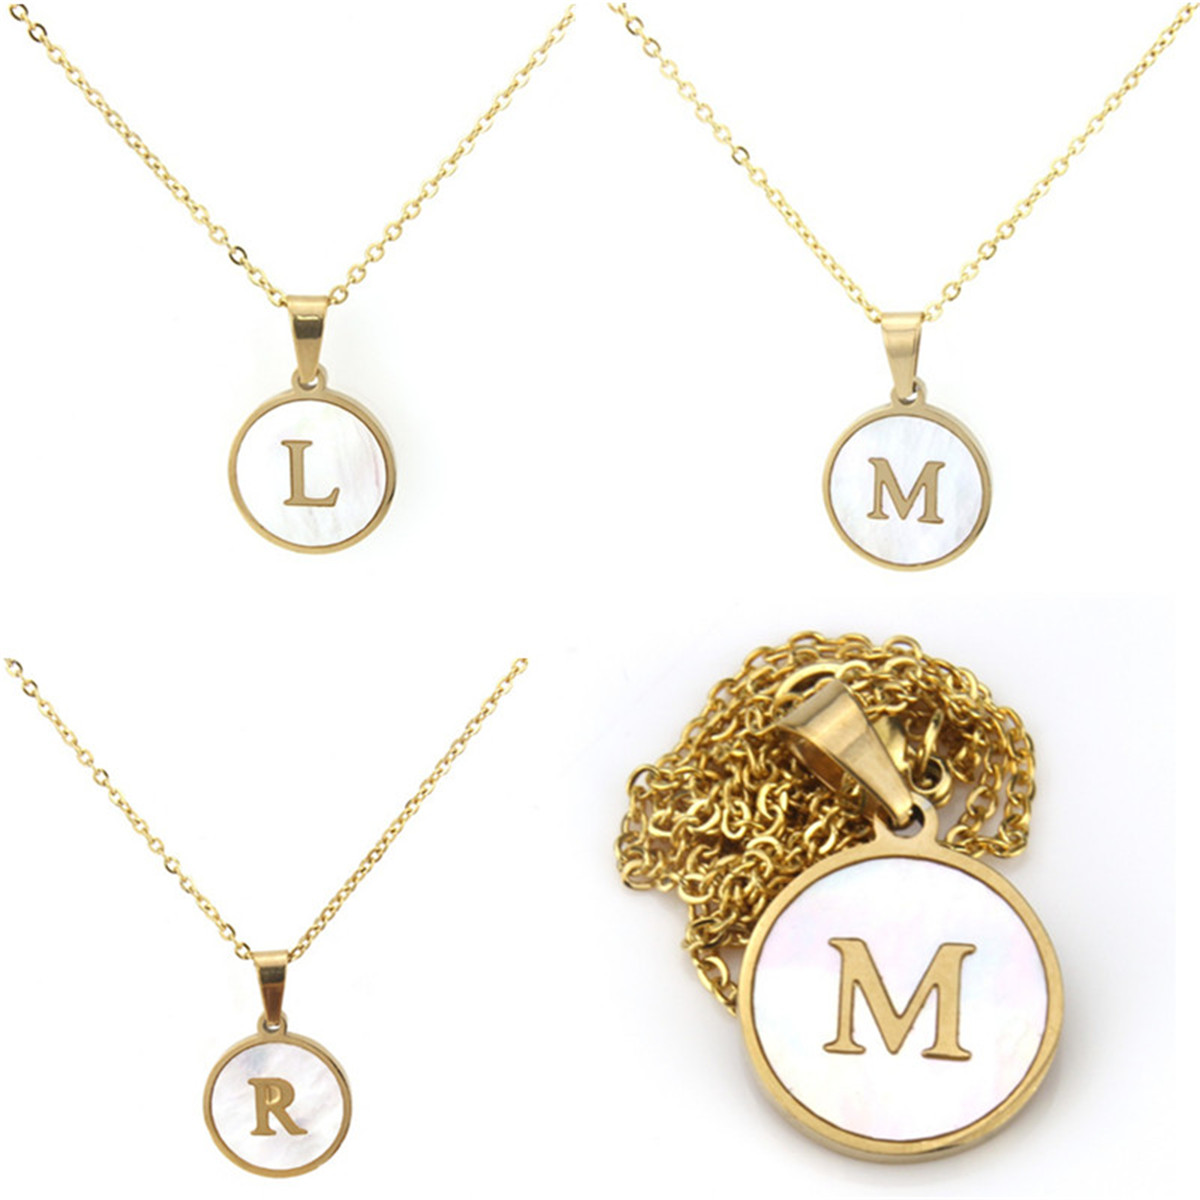 Silver Stainless Steel Alphabet Initial Letter Pendant Necklace Gifts A-Z